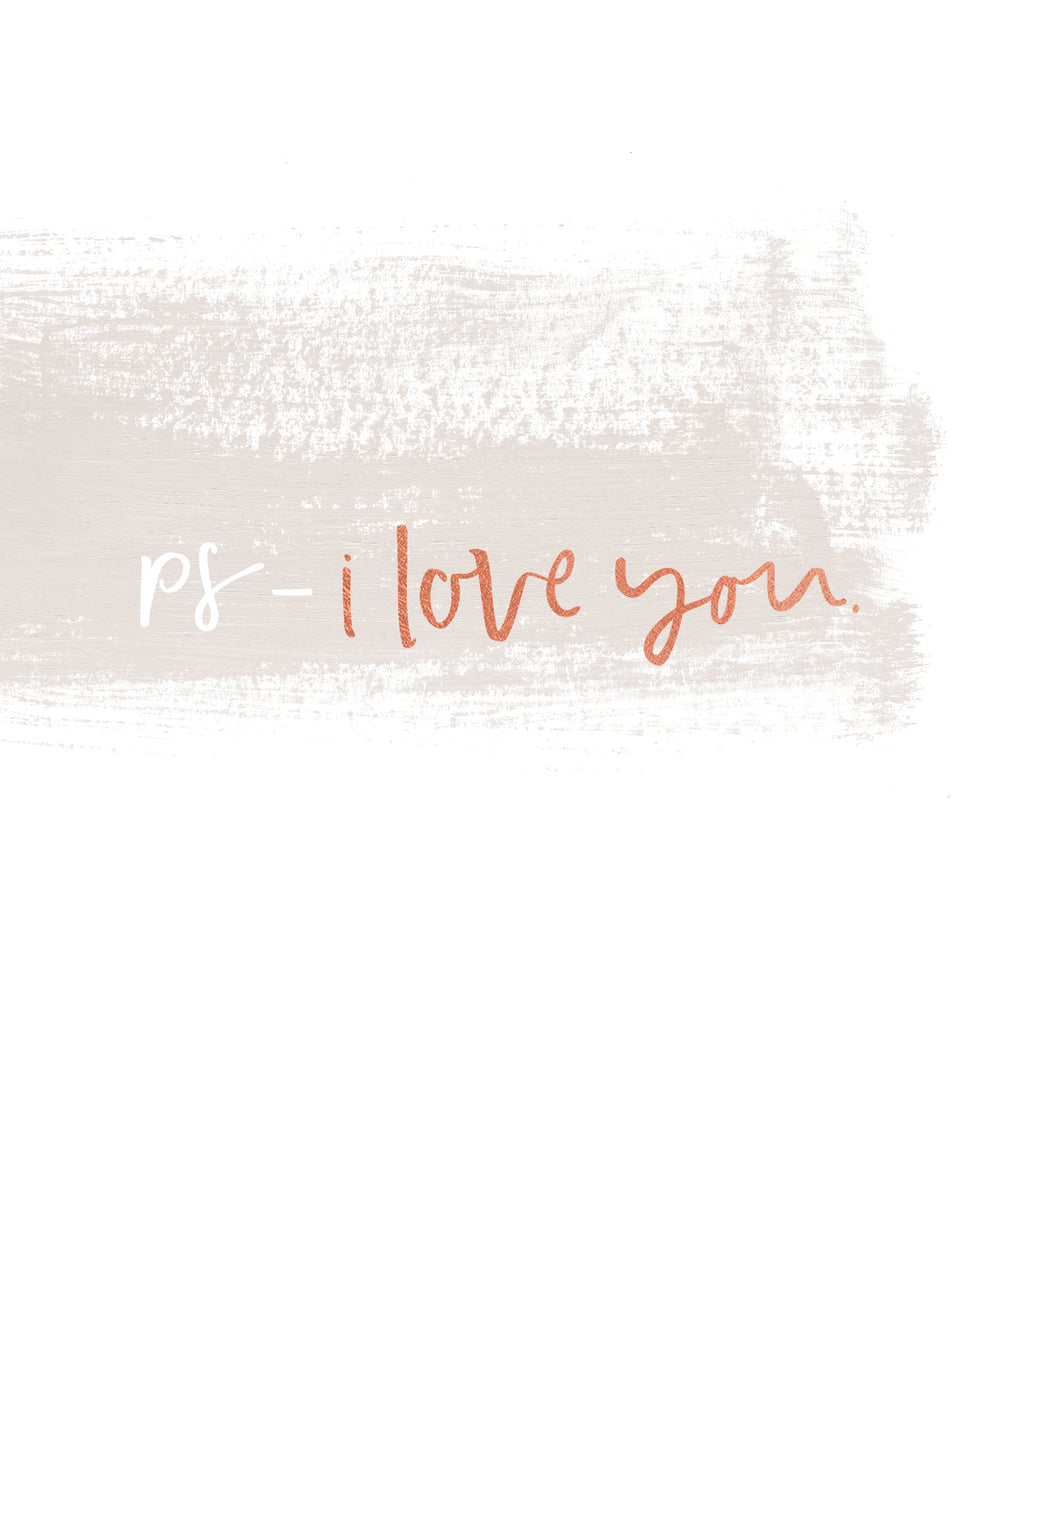 PS - I Love You